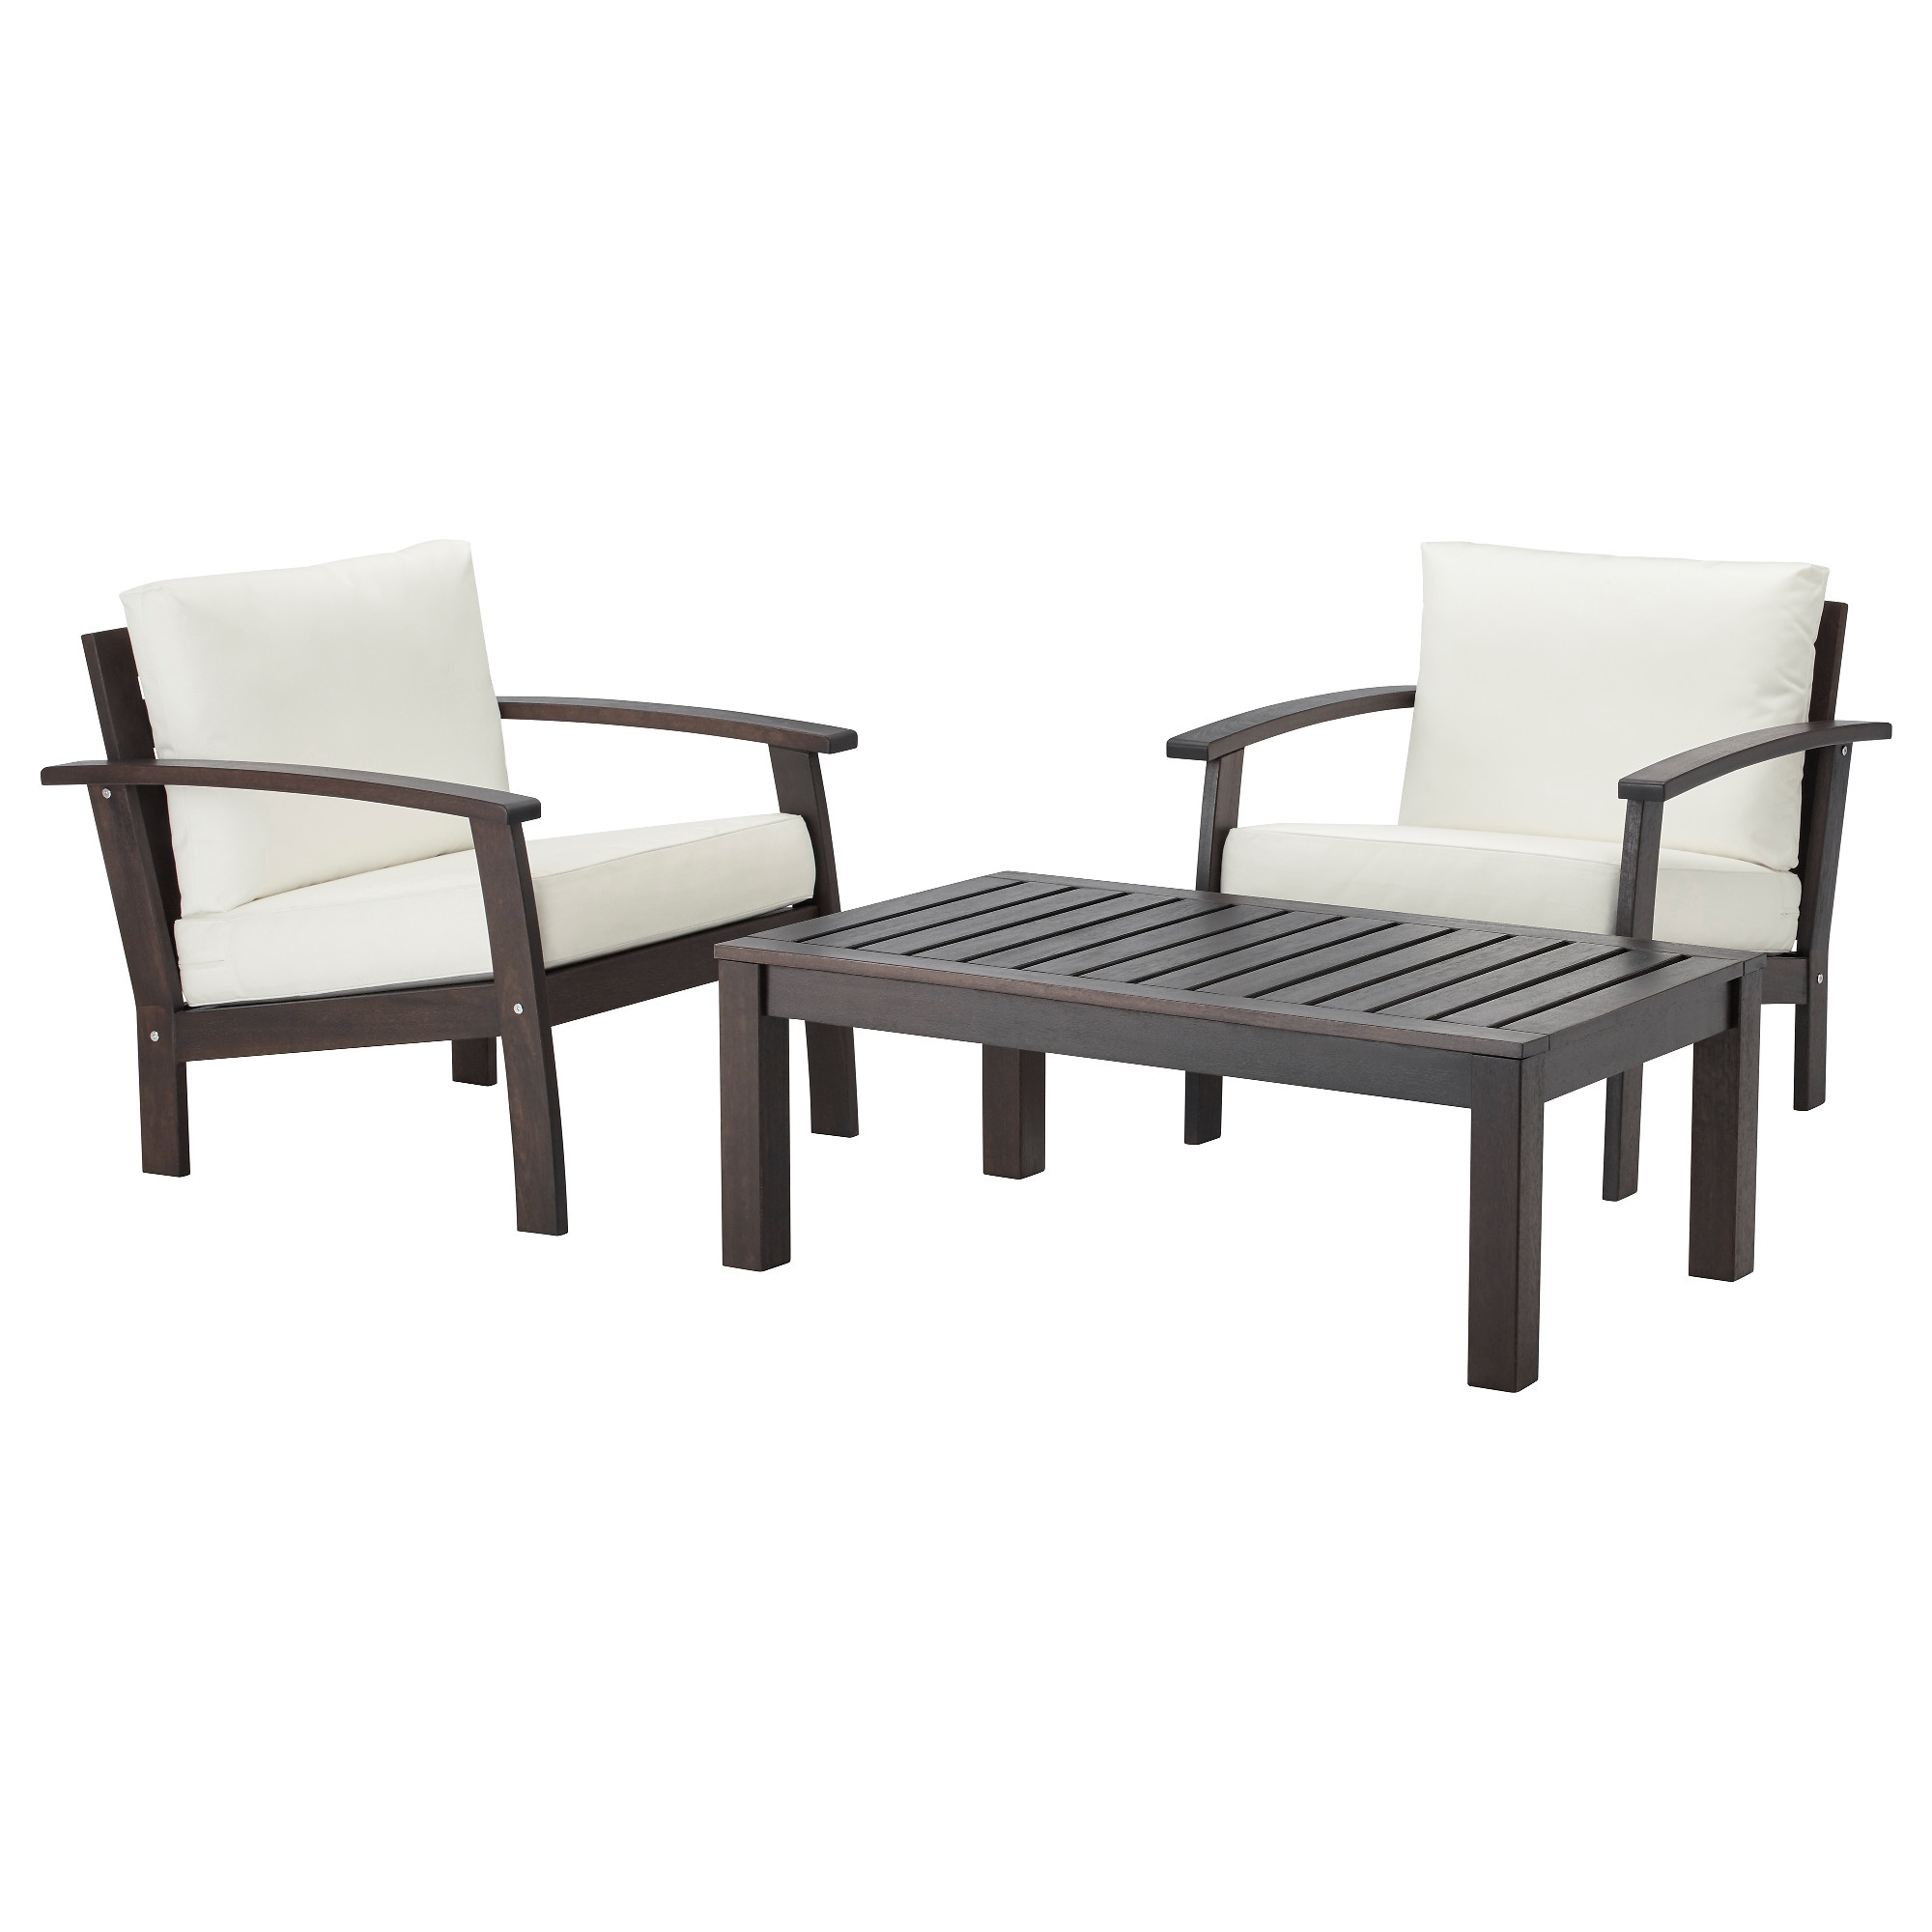 KLÖVEN / KUNGSÖ Conversation Set, Outdoor, Brown Stained, White Part 93